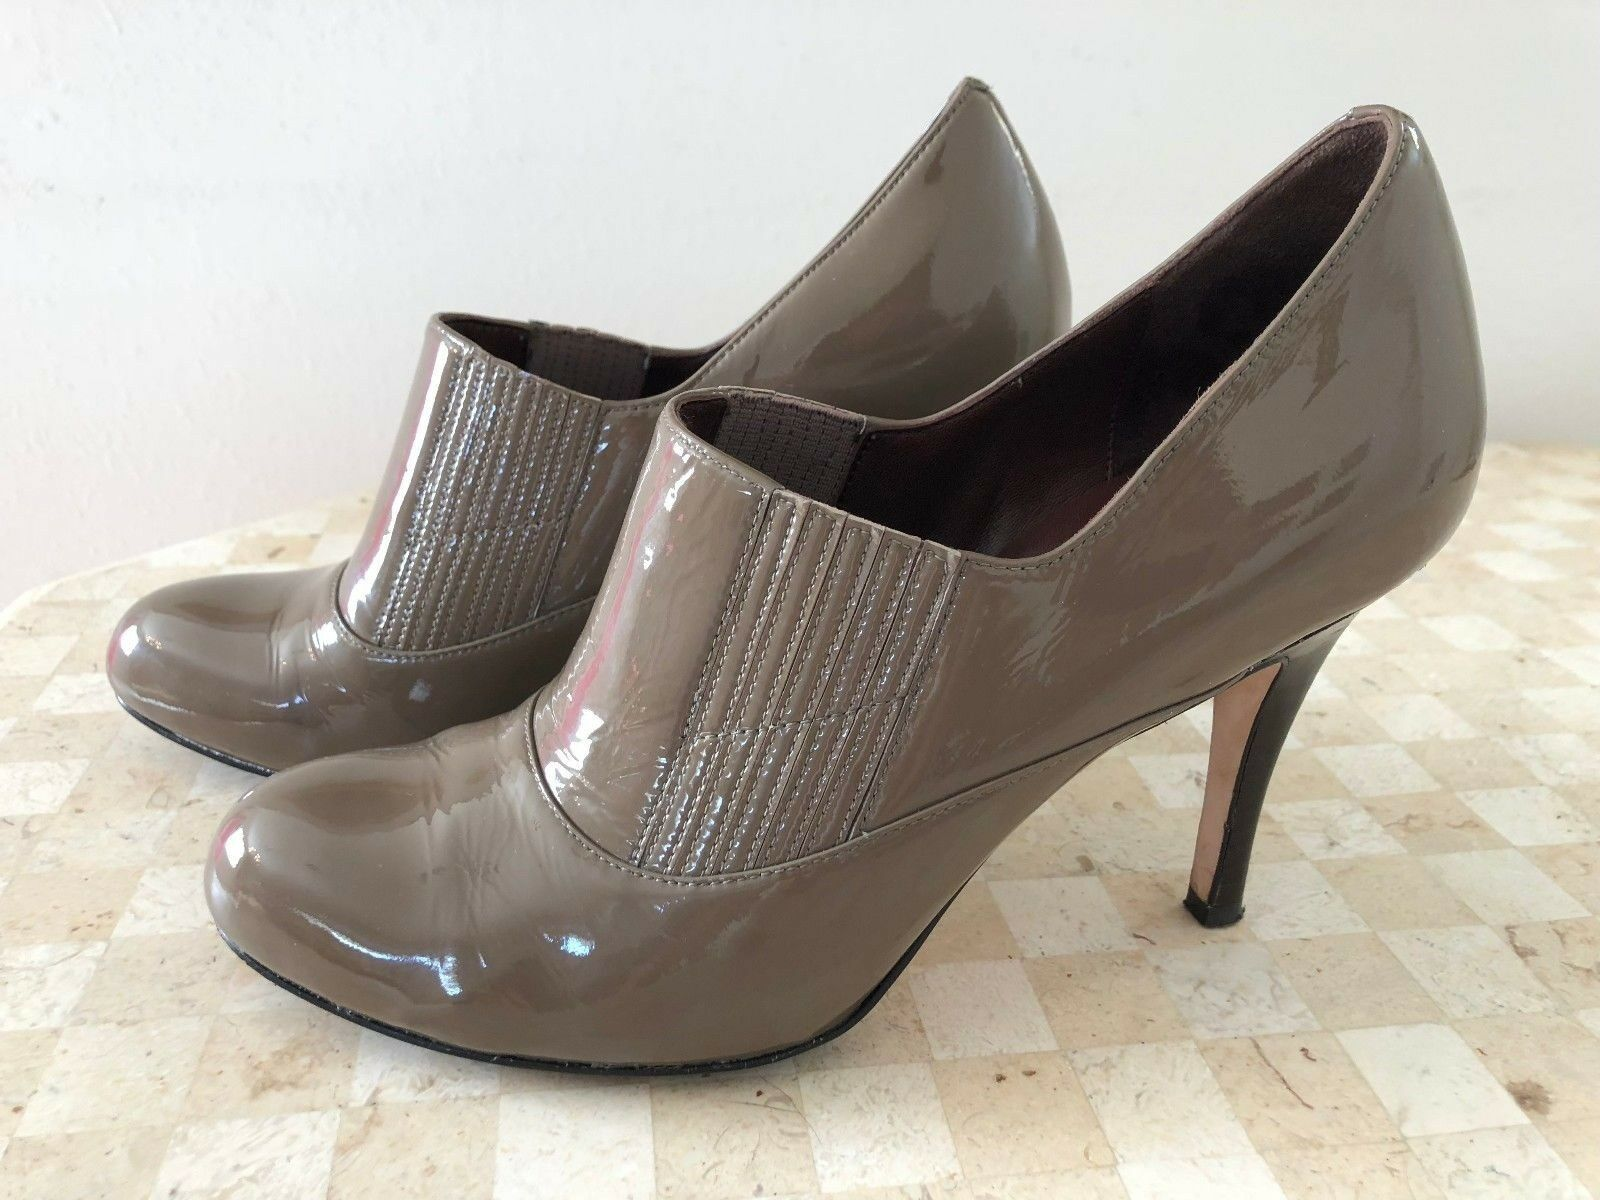 COLE HAAN Taupe Patent Leather Air Ankle Booties 9M